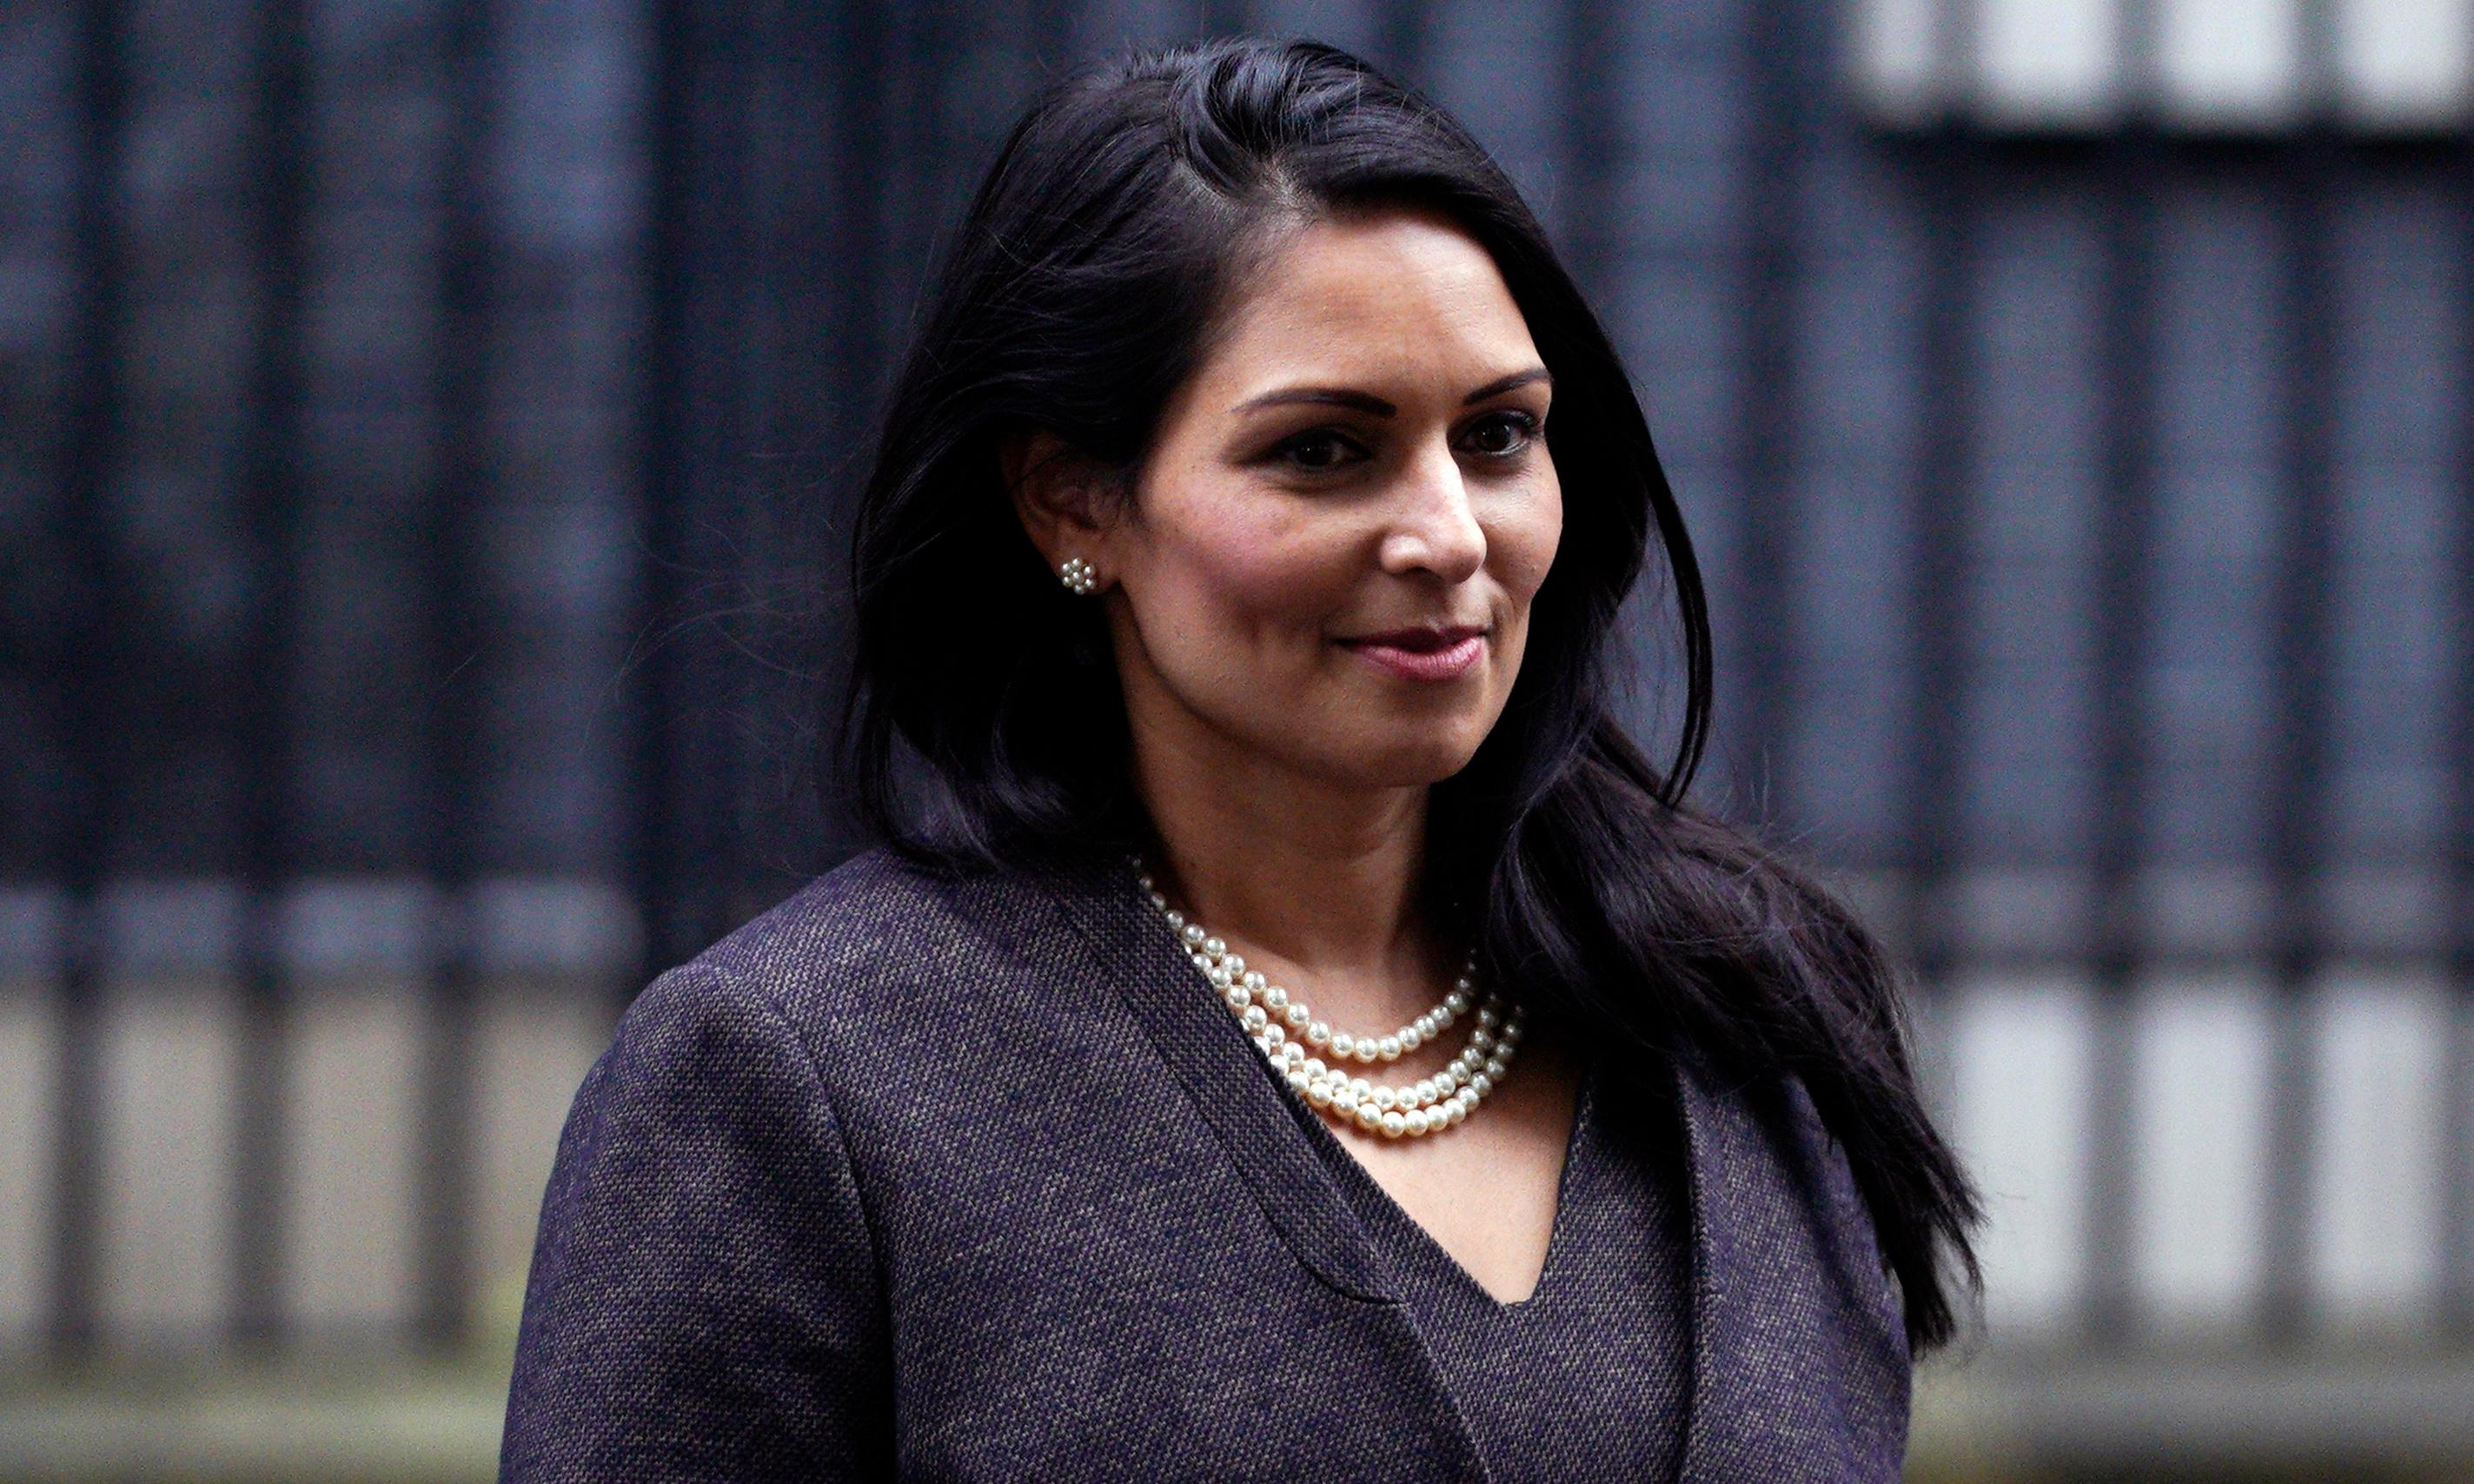 Civil servant vows bullying zero tolerance after Priti Patel reports